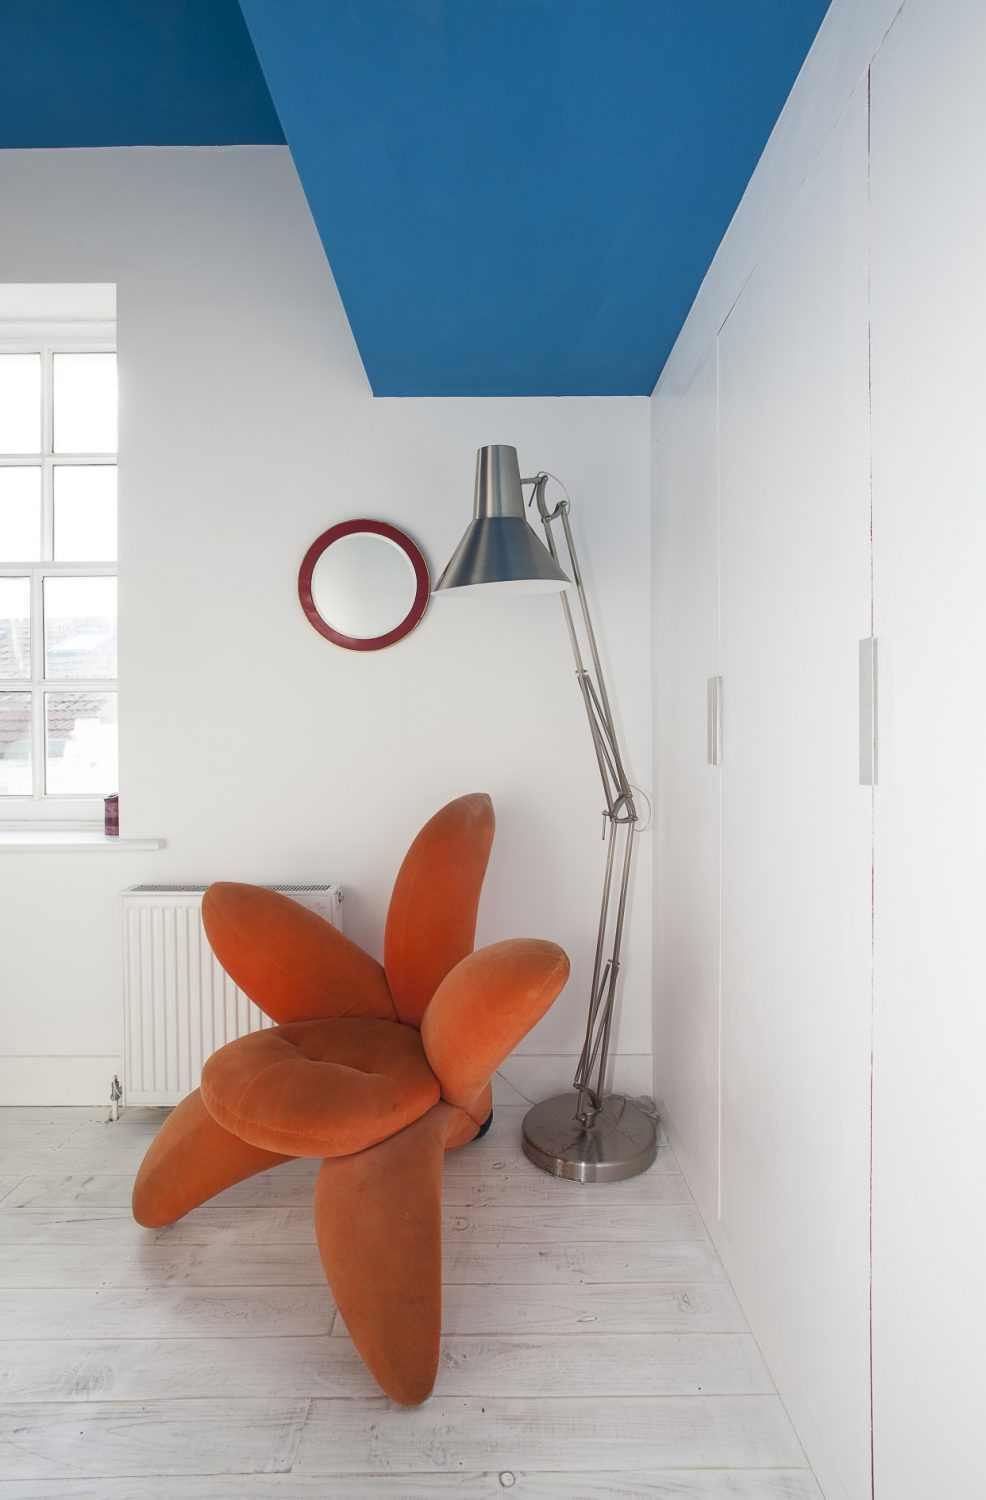 A second guest bedroom is home to a vibrant upholstered lily chair by Japanese designer Masanori Umeda